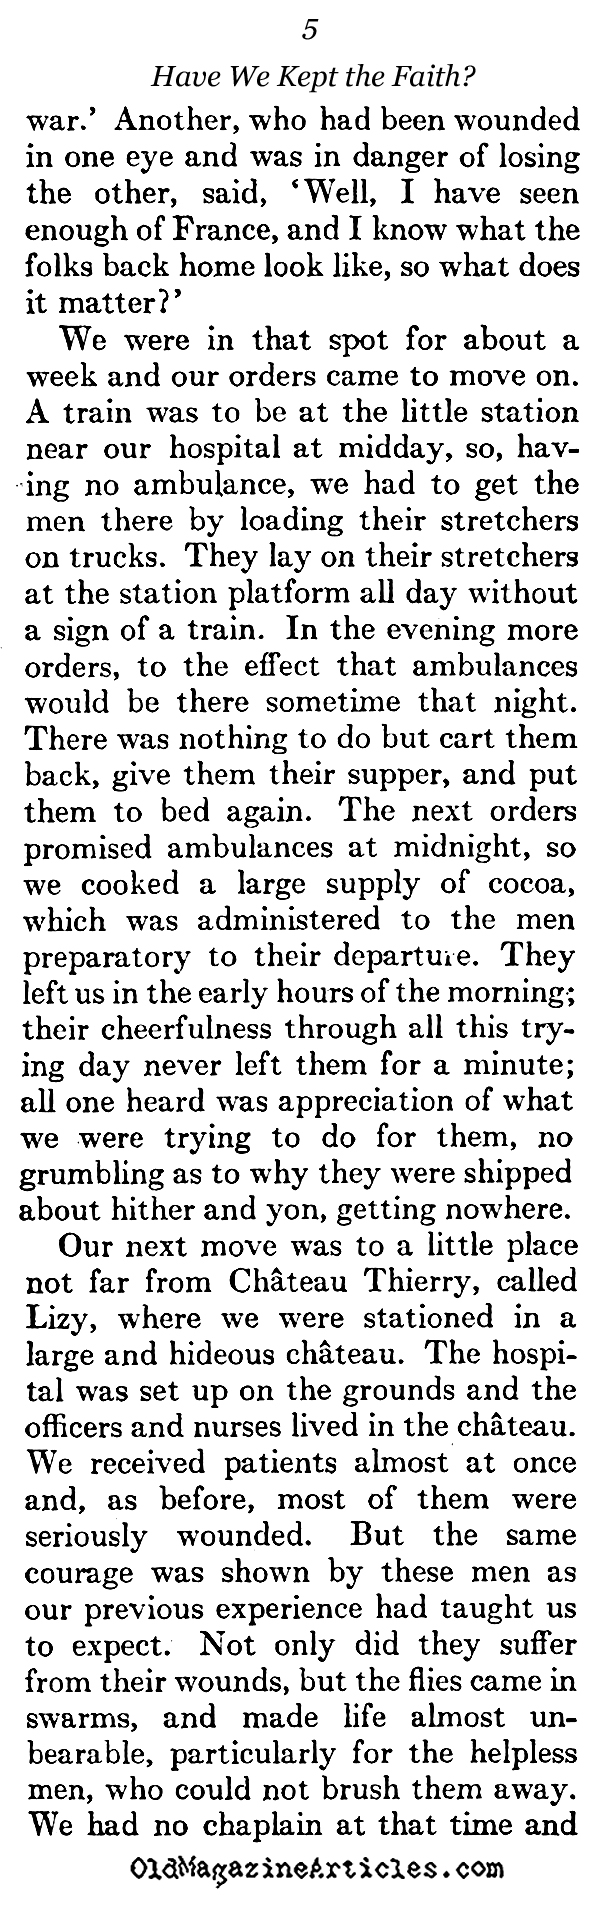 Remembering the American Dead (The Atlantic Monthly, 1923)